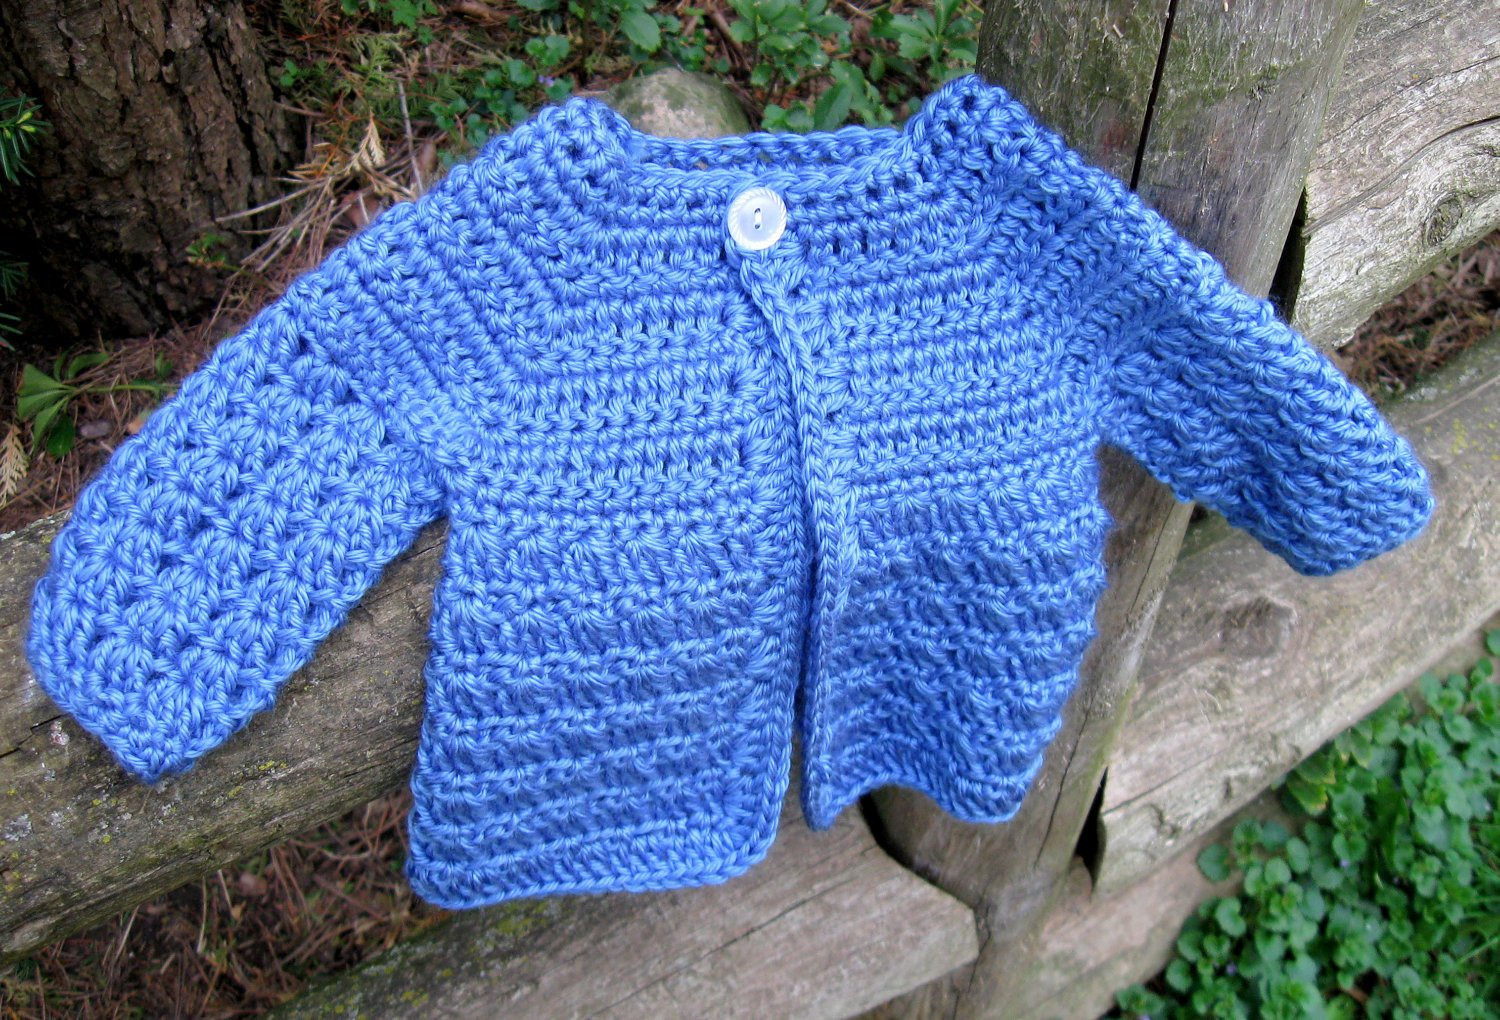 Crochet Baby Sweater Beautiful Crochet Pattern Baby Sweater Perfect for Boys or Girls Of Charming 44 Images Crochet Baby Sweater